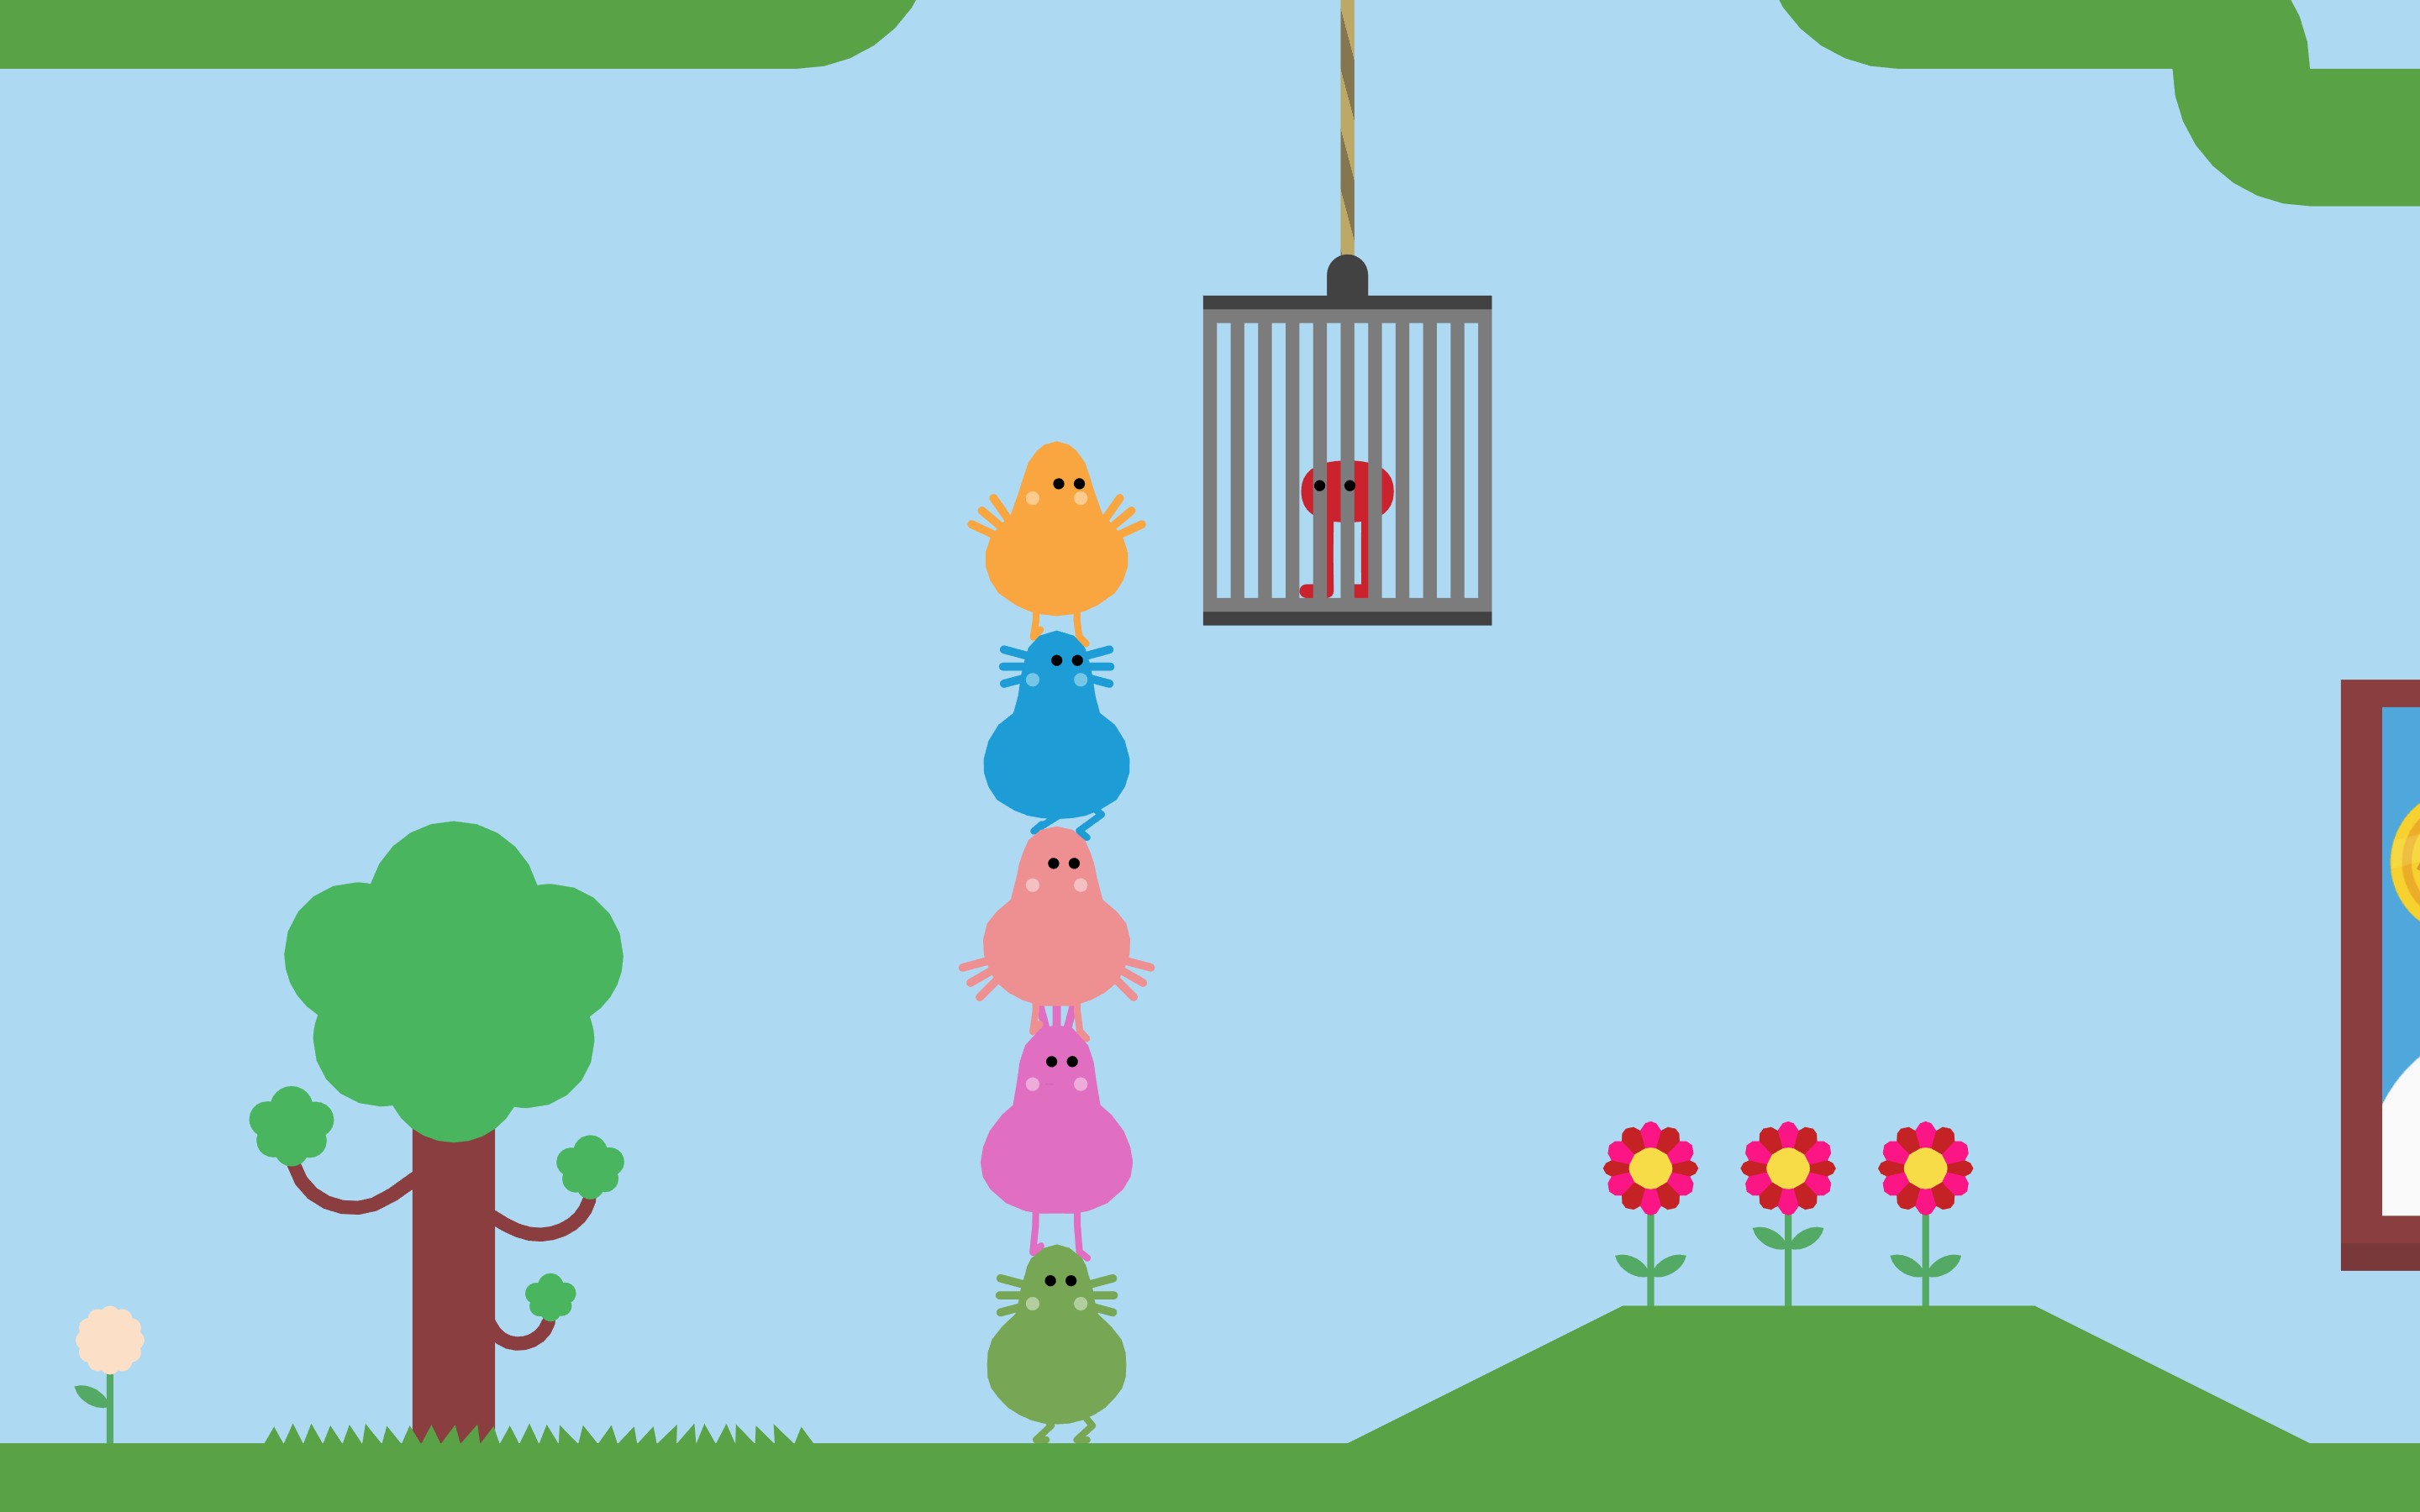 pikuniku_screenshot_1.png